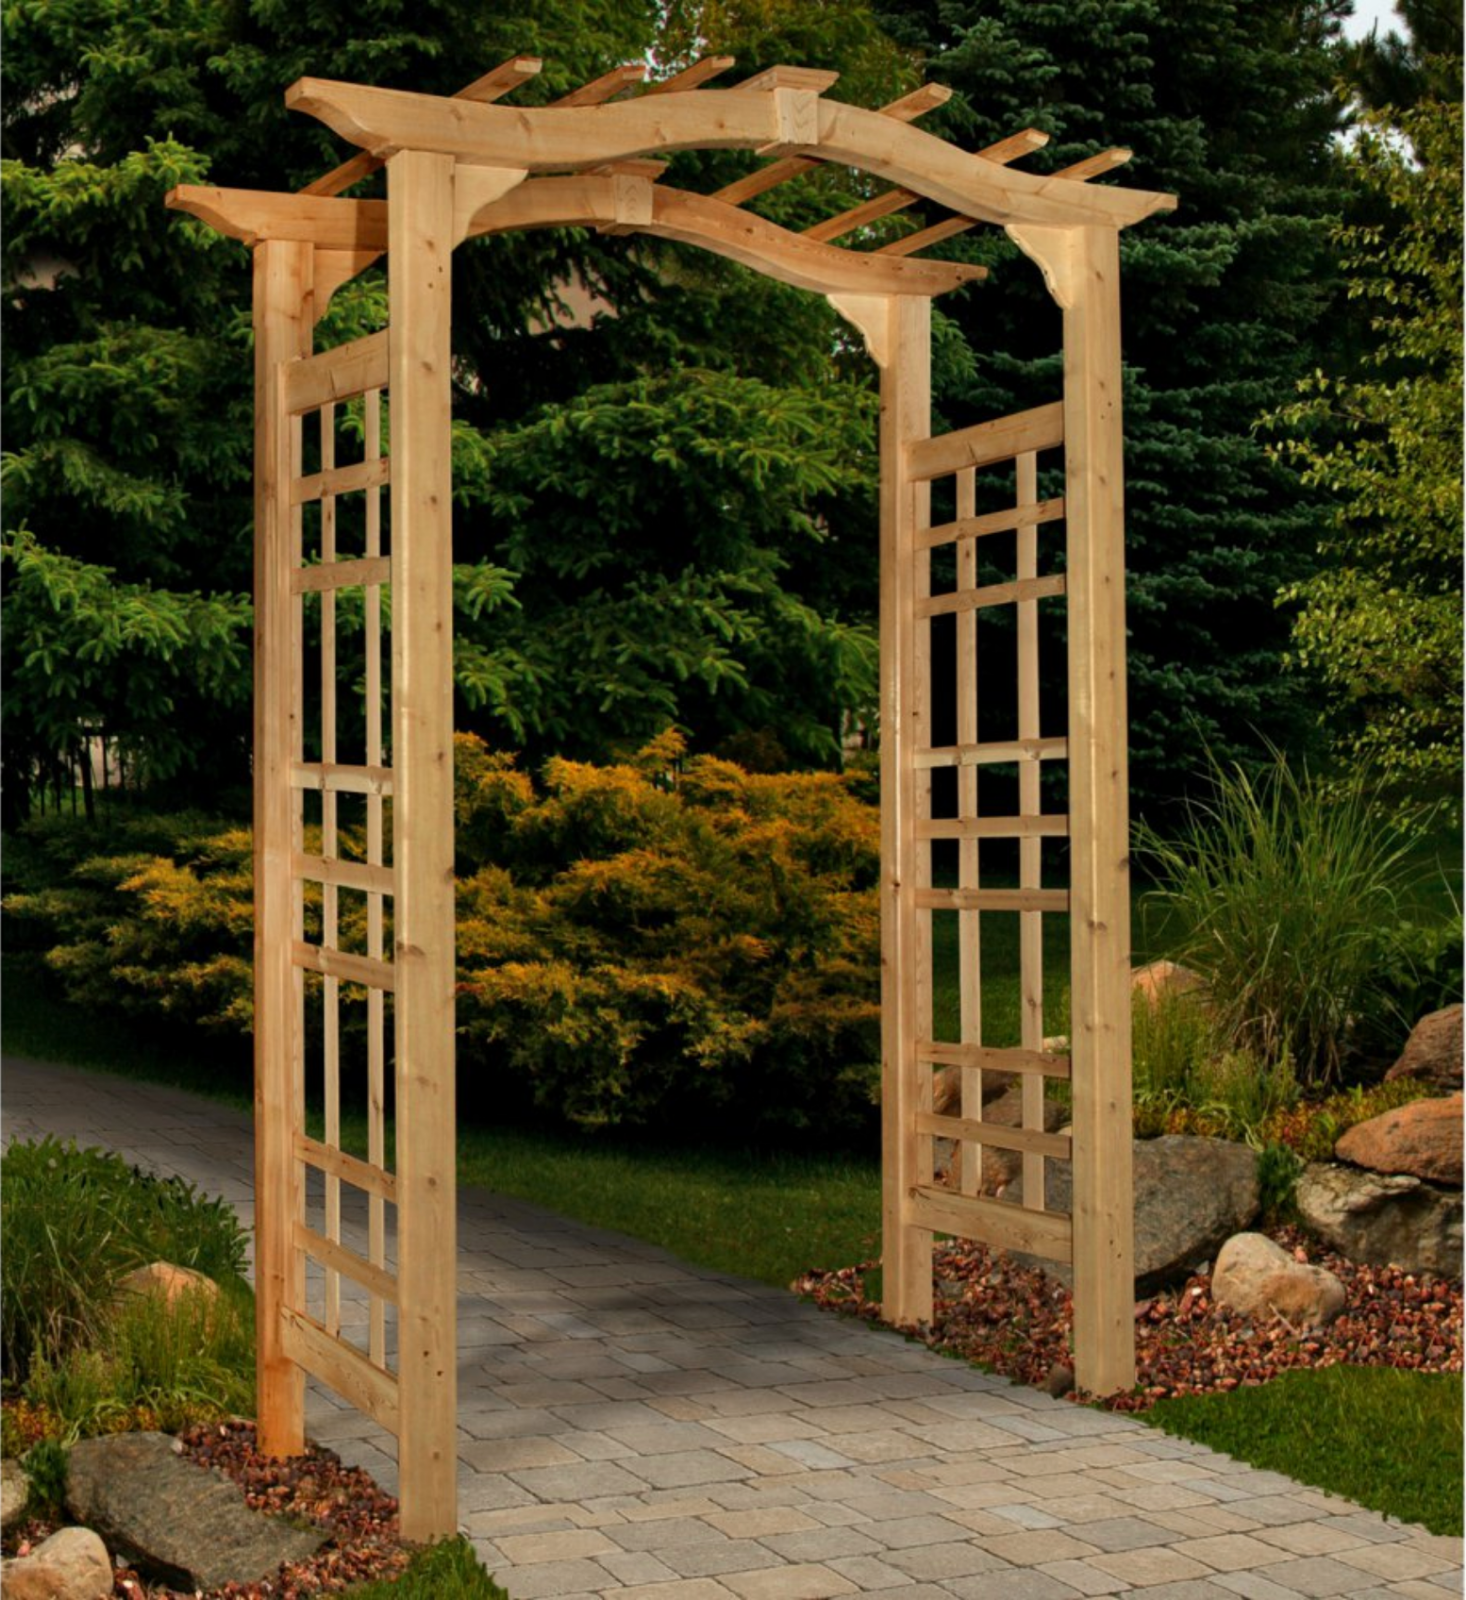 Outdoor Arbor Garden Trellis Archway Decor Patio Wedding Arch